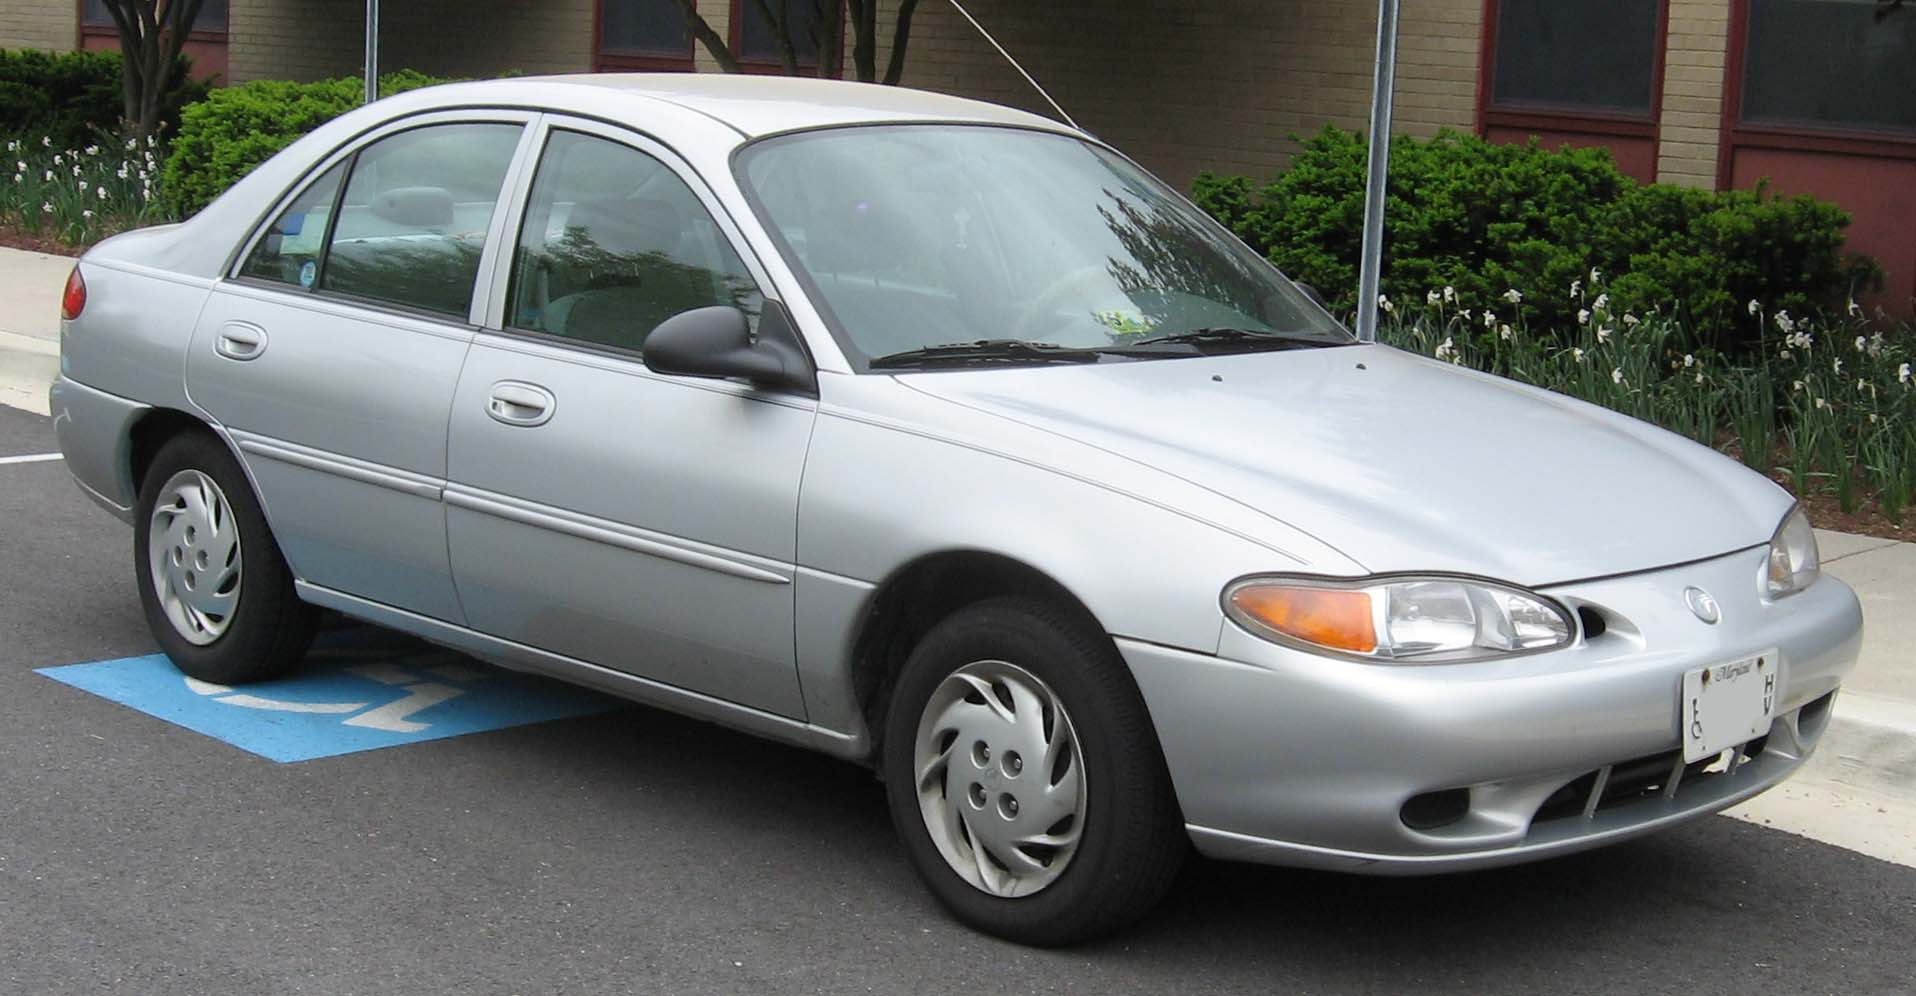 Mercury car 1999 97 99 mercury tracer sedan jpg